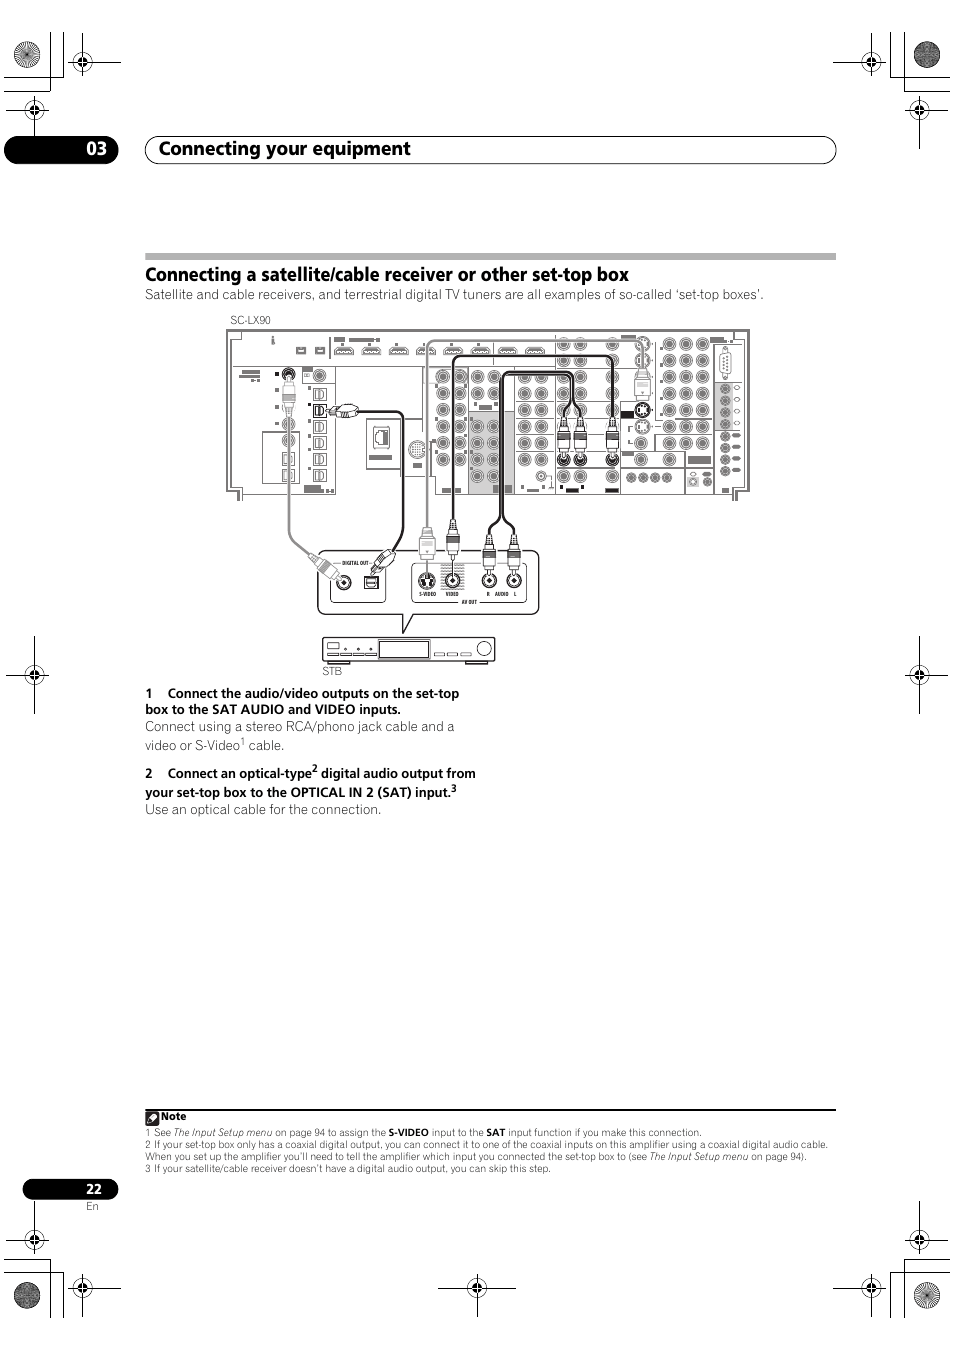 hight resolution of connecting your equipment 03 cable 2 connect an optical type use an optical cable for the connection pioneer sc lx90 user manual page 22 150